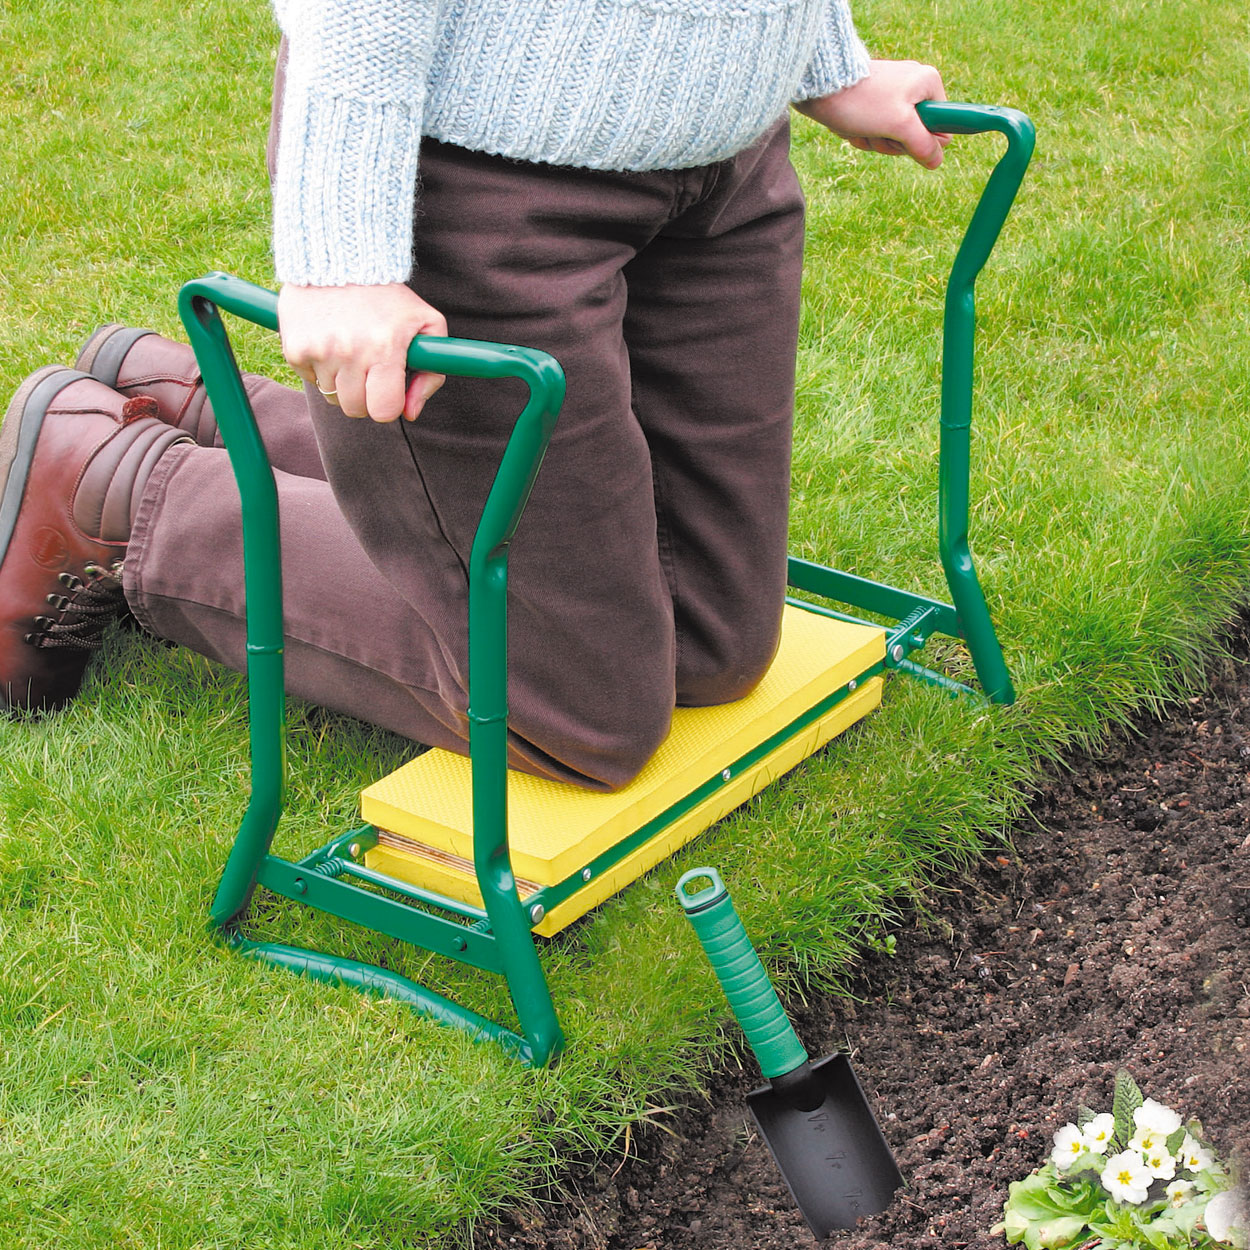 Coopers of Stortford Garden Kneeler Seat from Coopers of Stortford